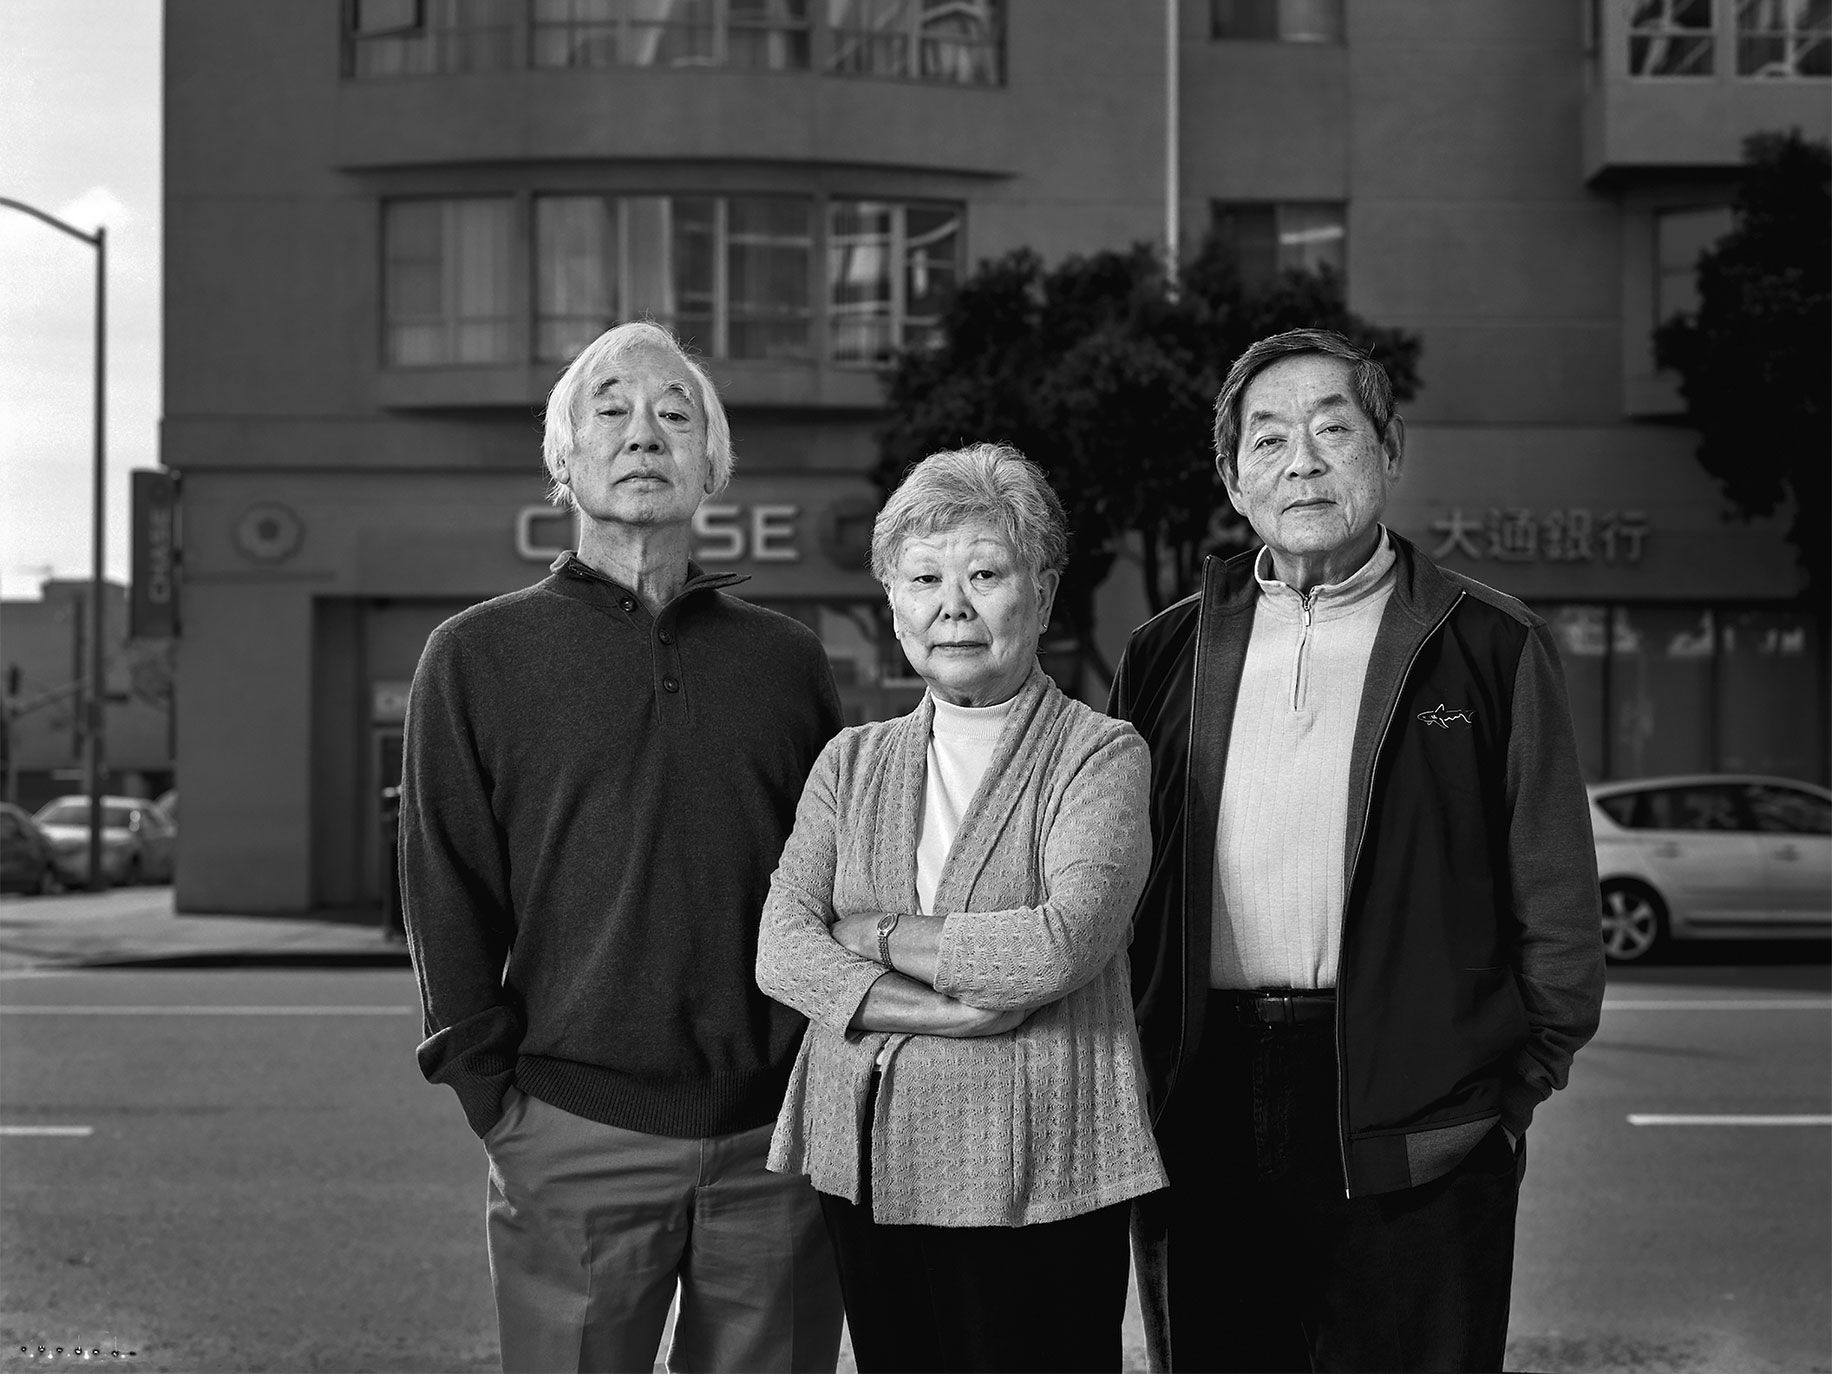 Gerry Naruo, 68, Karen Hashimoto, 73, and Ted Tanisawa, 71, all cousins on the Masuda side of the family, photographed in 2016 where their family's Oakland store was once located.